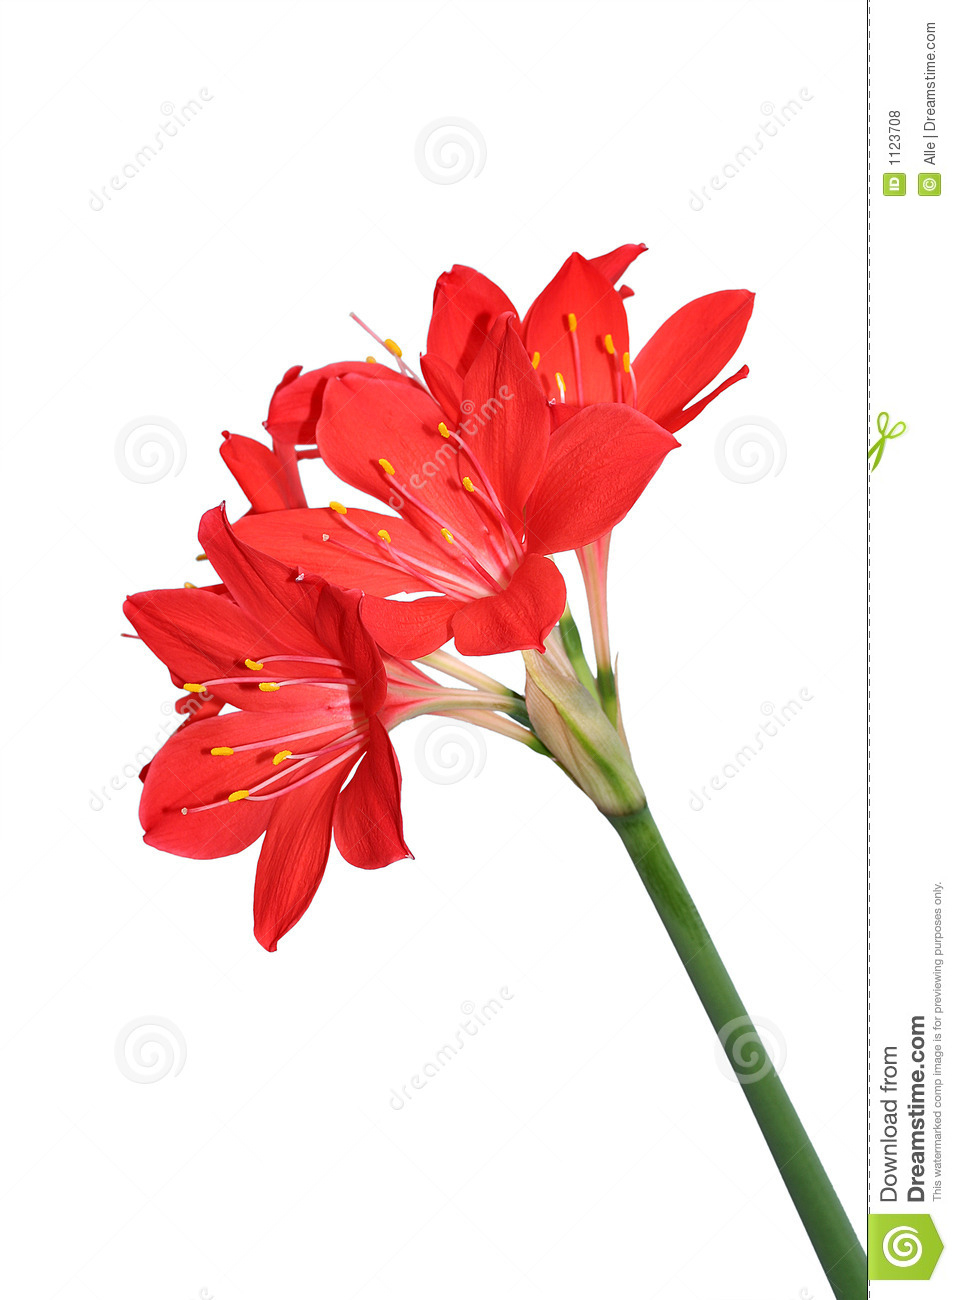 red lilies royalty free stock photos  image, Natural flower